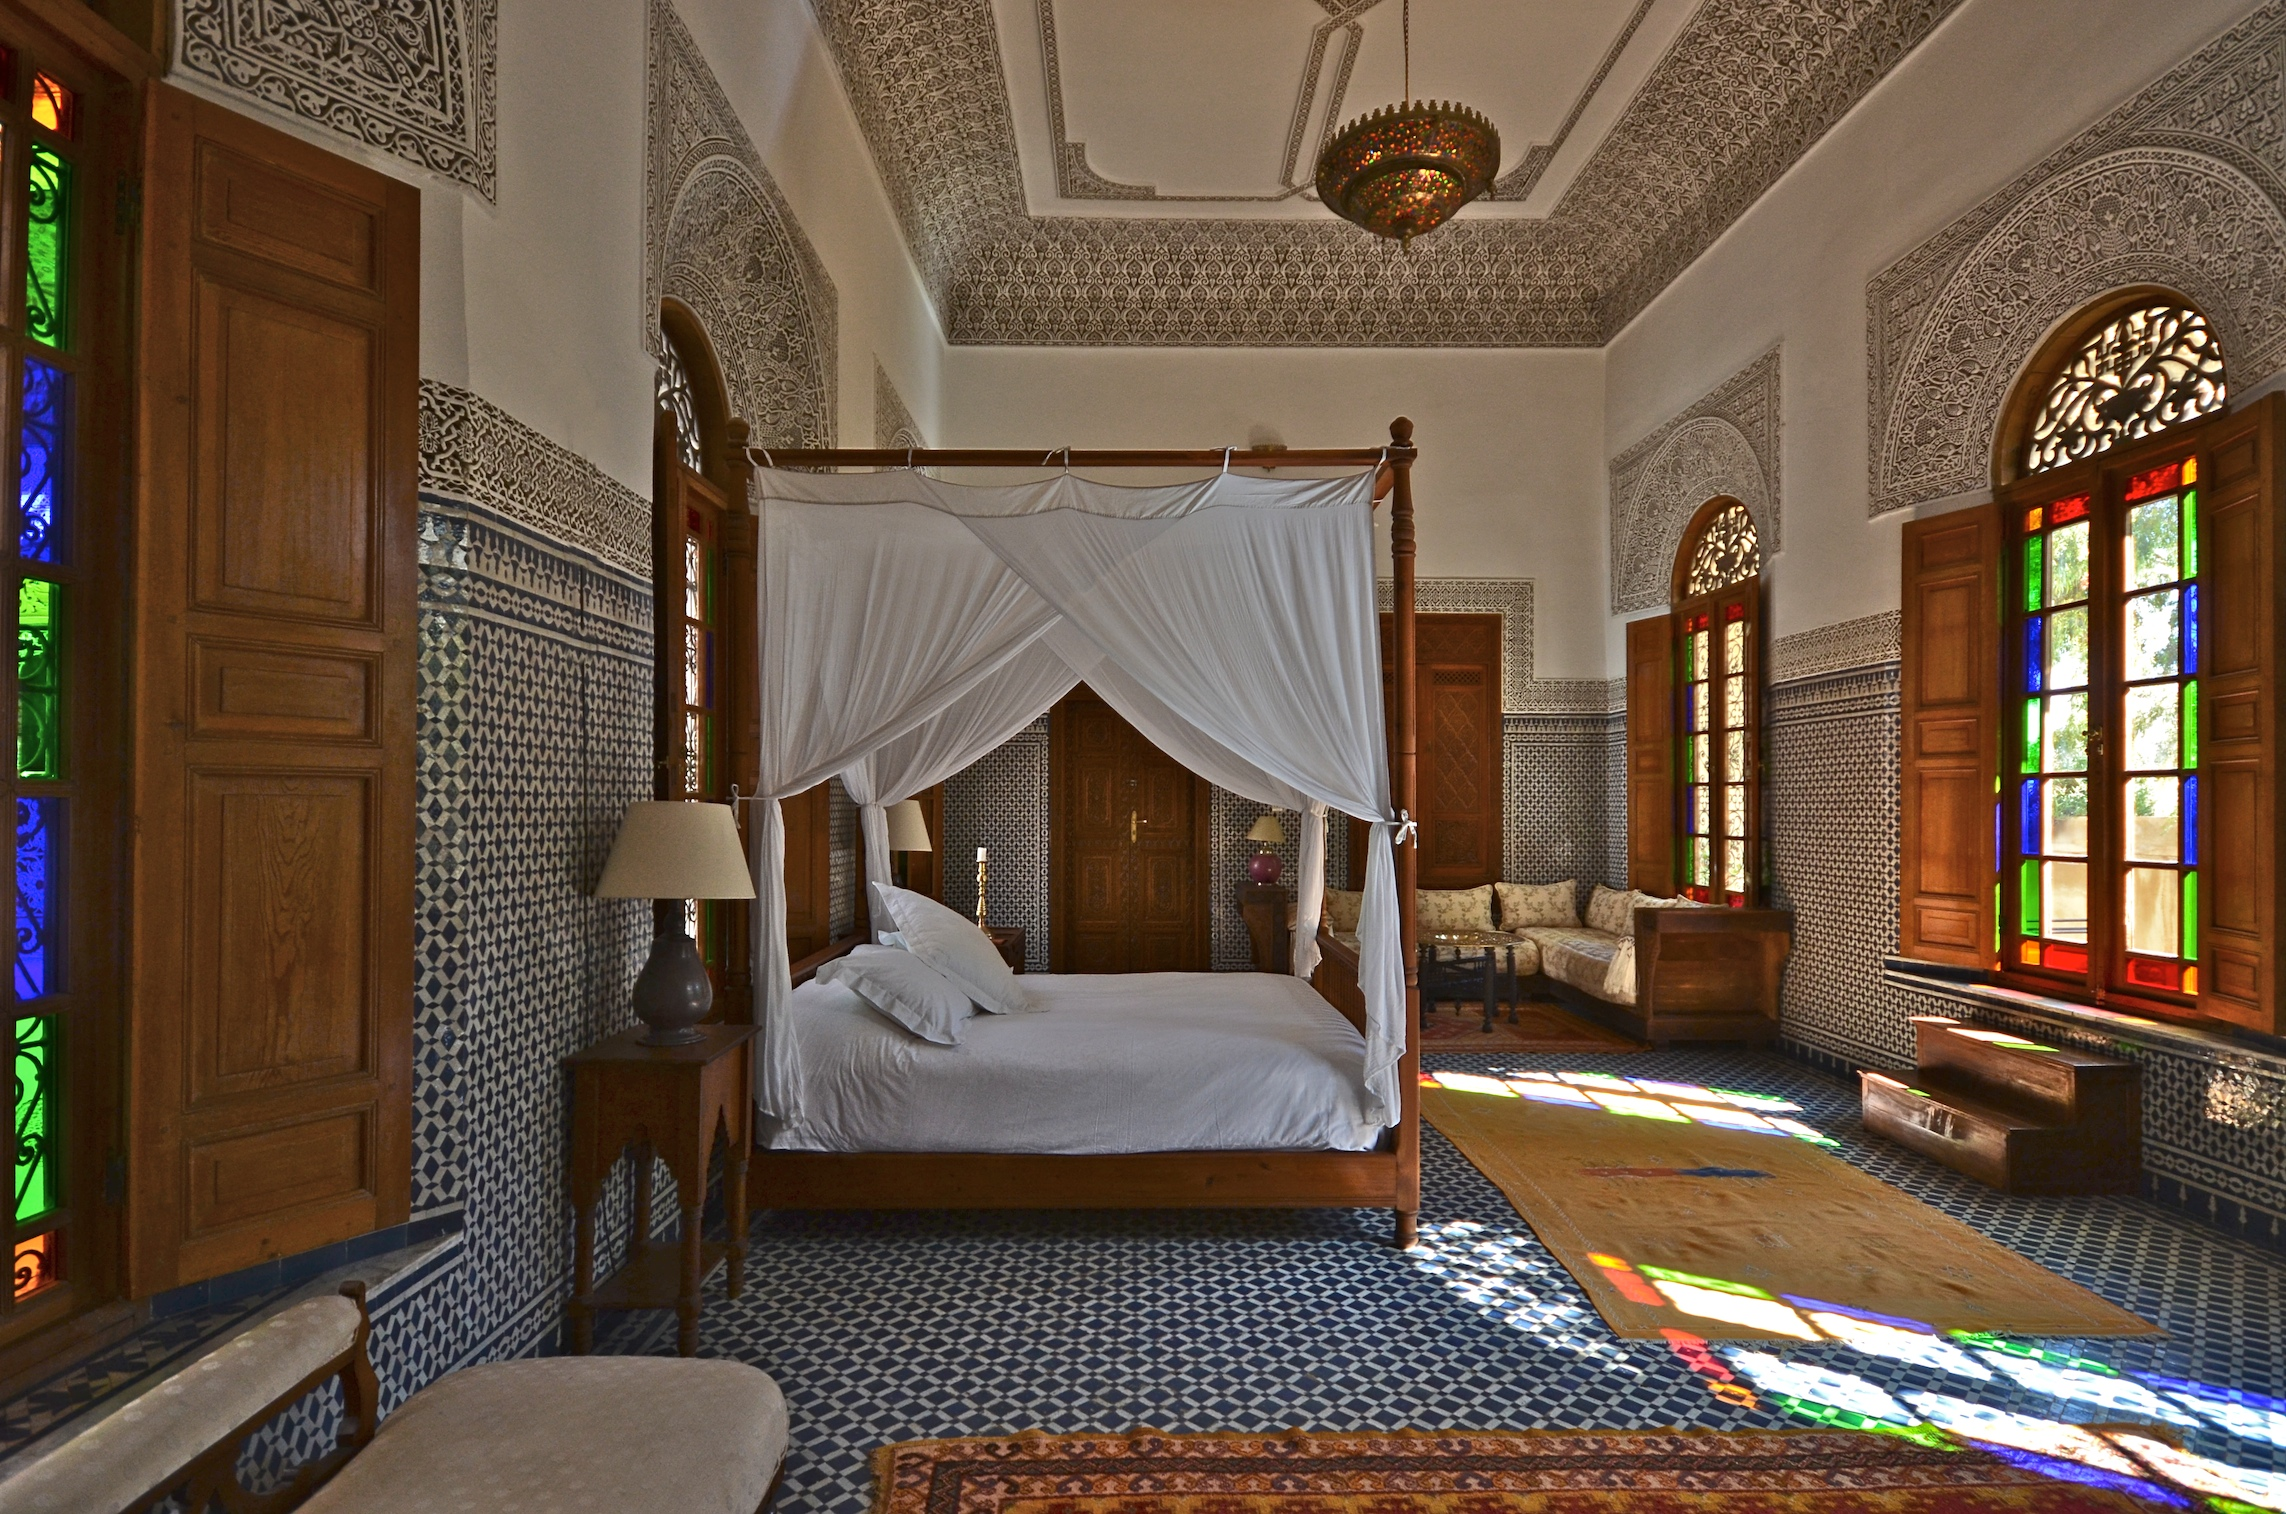 The best boutique hotels and riads in morocco morocco for Great boutique hotels